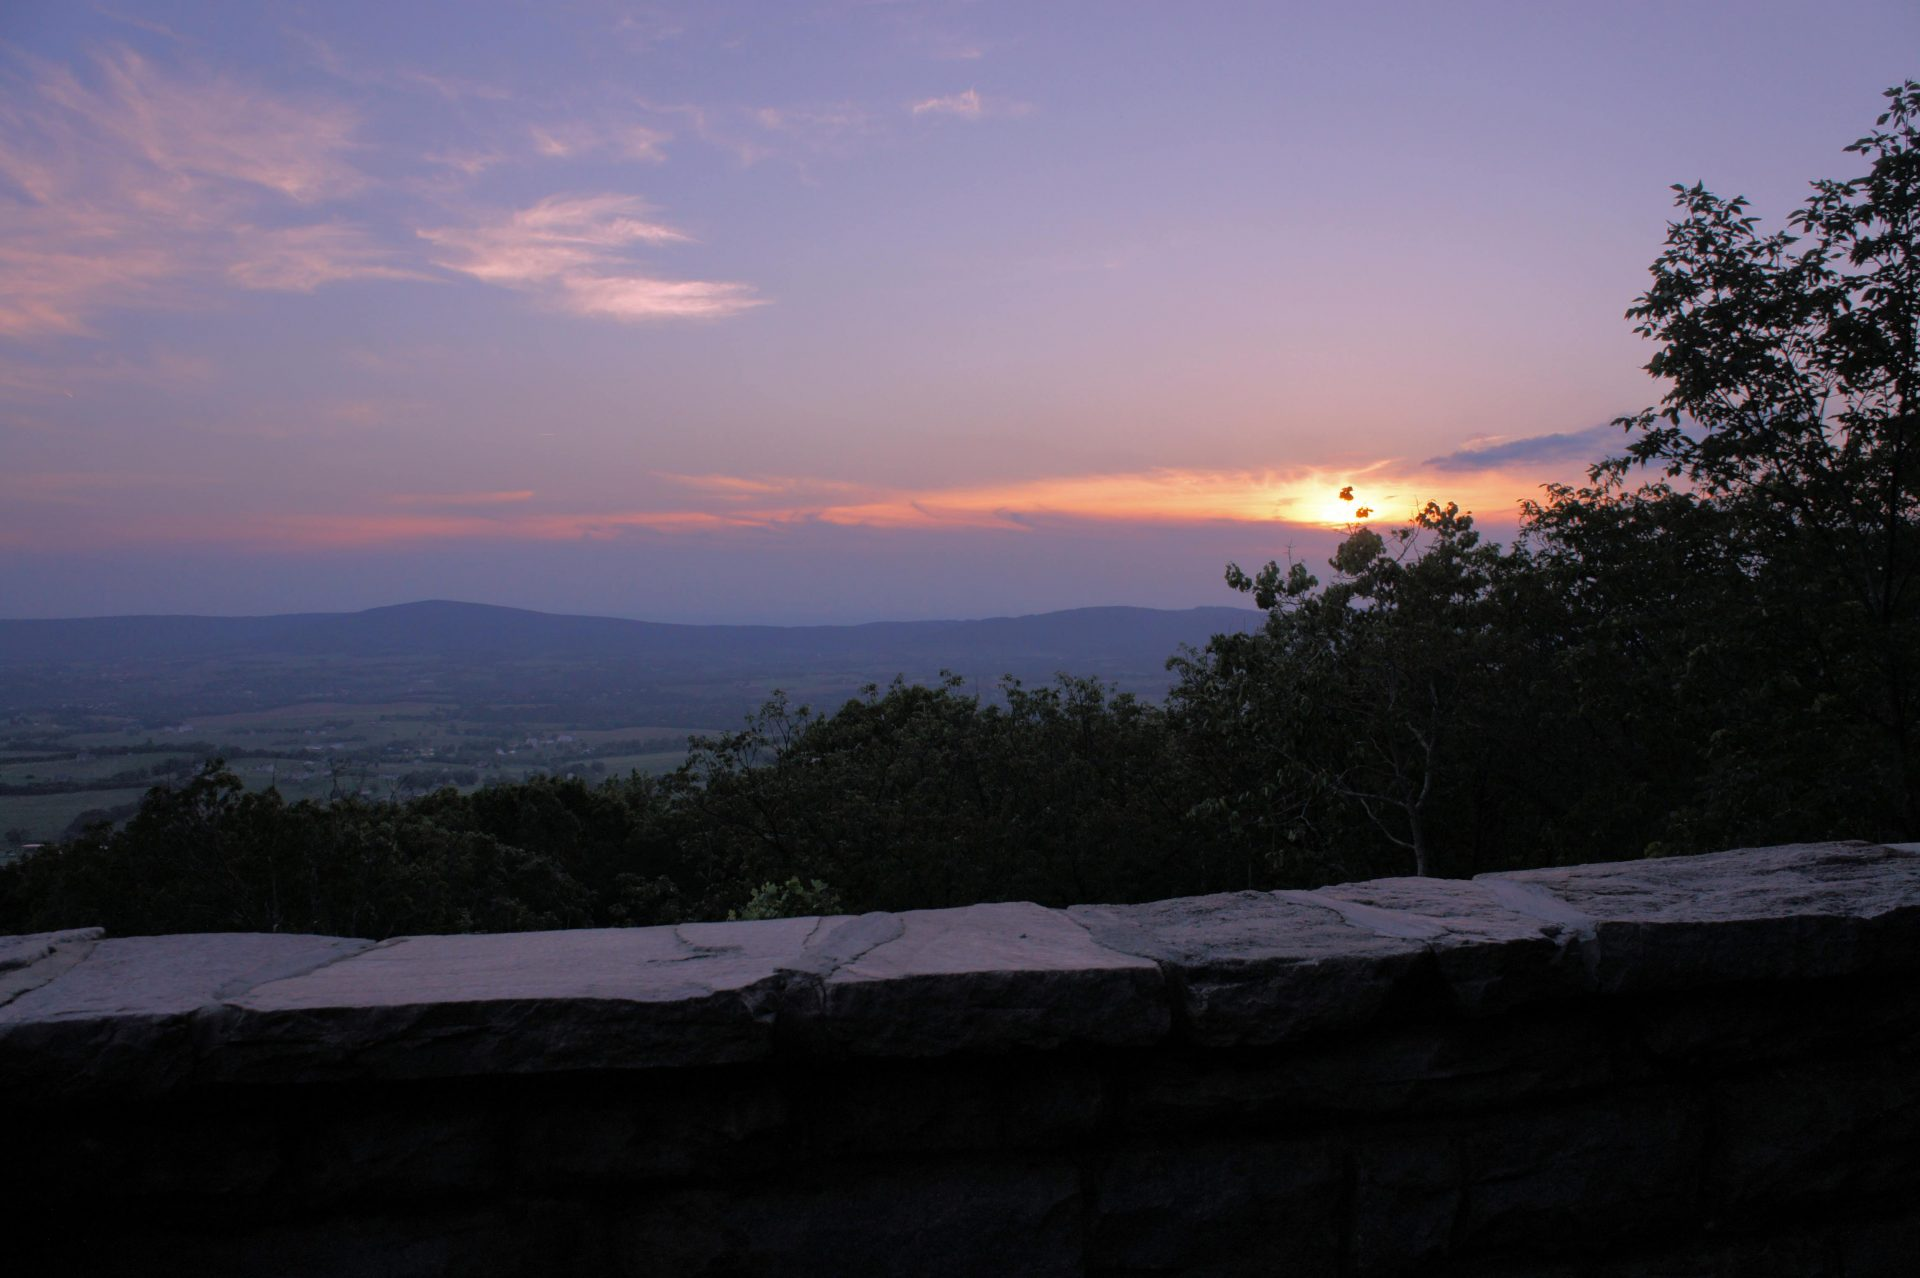 The sun setting over Middletown below at Gambrill State Park